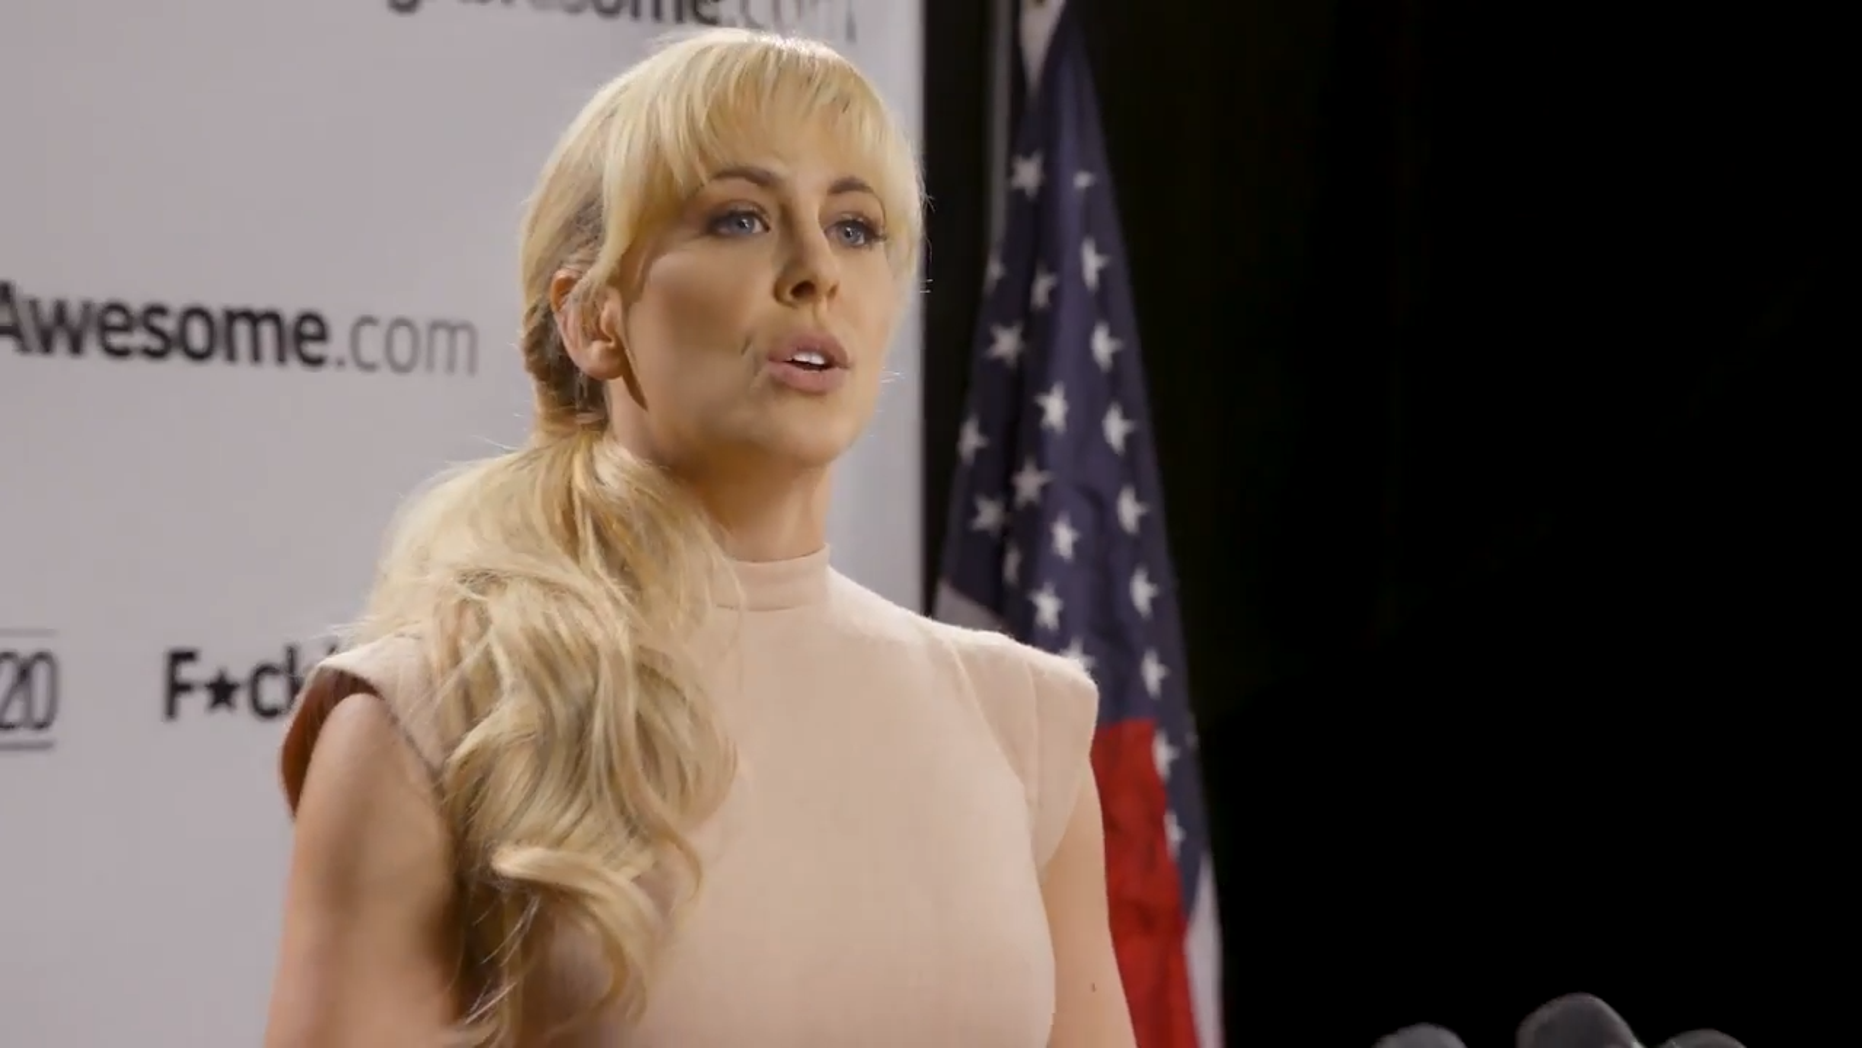 Cherie DeVille, an adult film actress whose real name is Carolyn Paparozzi, made a splash after announcing her bid for president 17 months ago, way ahead of every other candidate, and hoped to run for the Democrat Party's nomination.